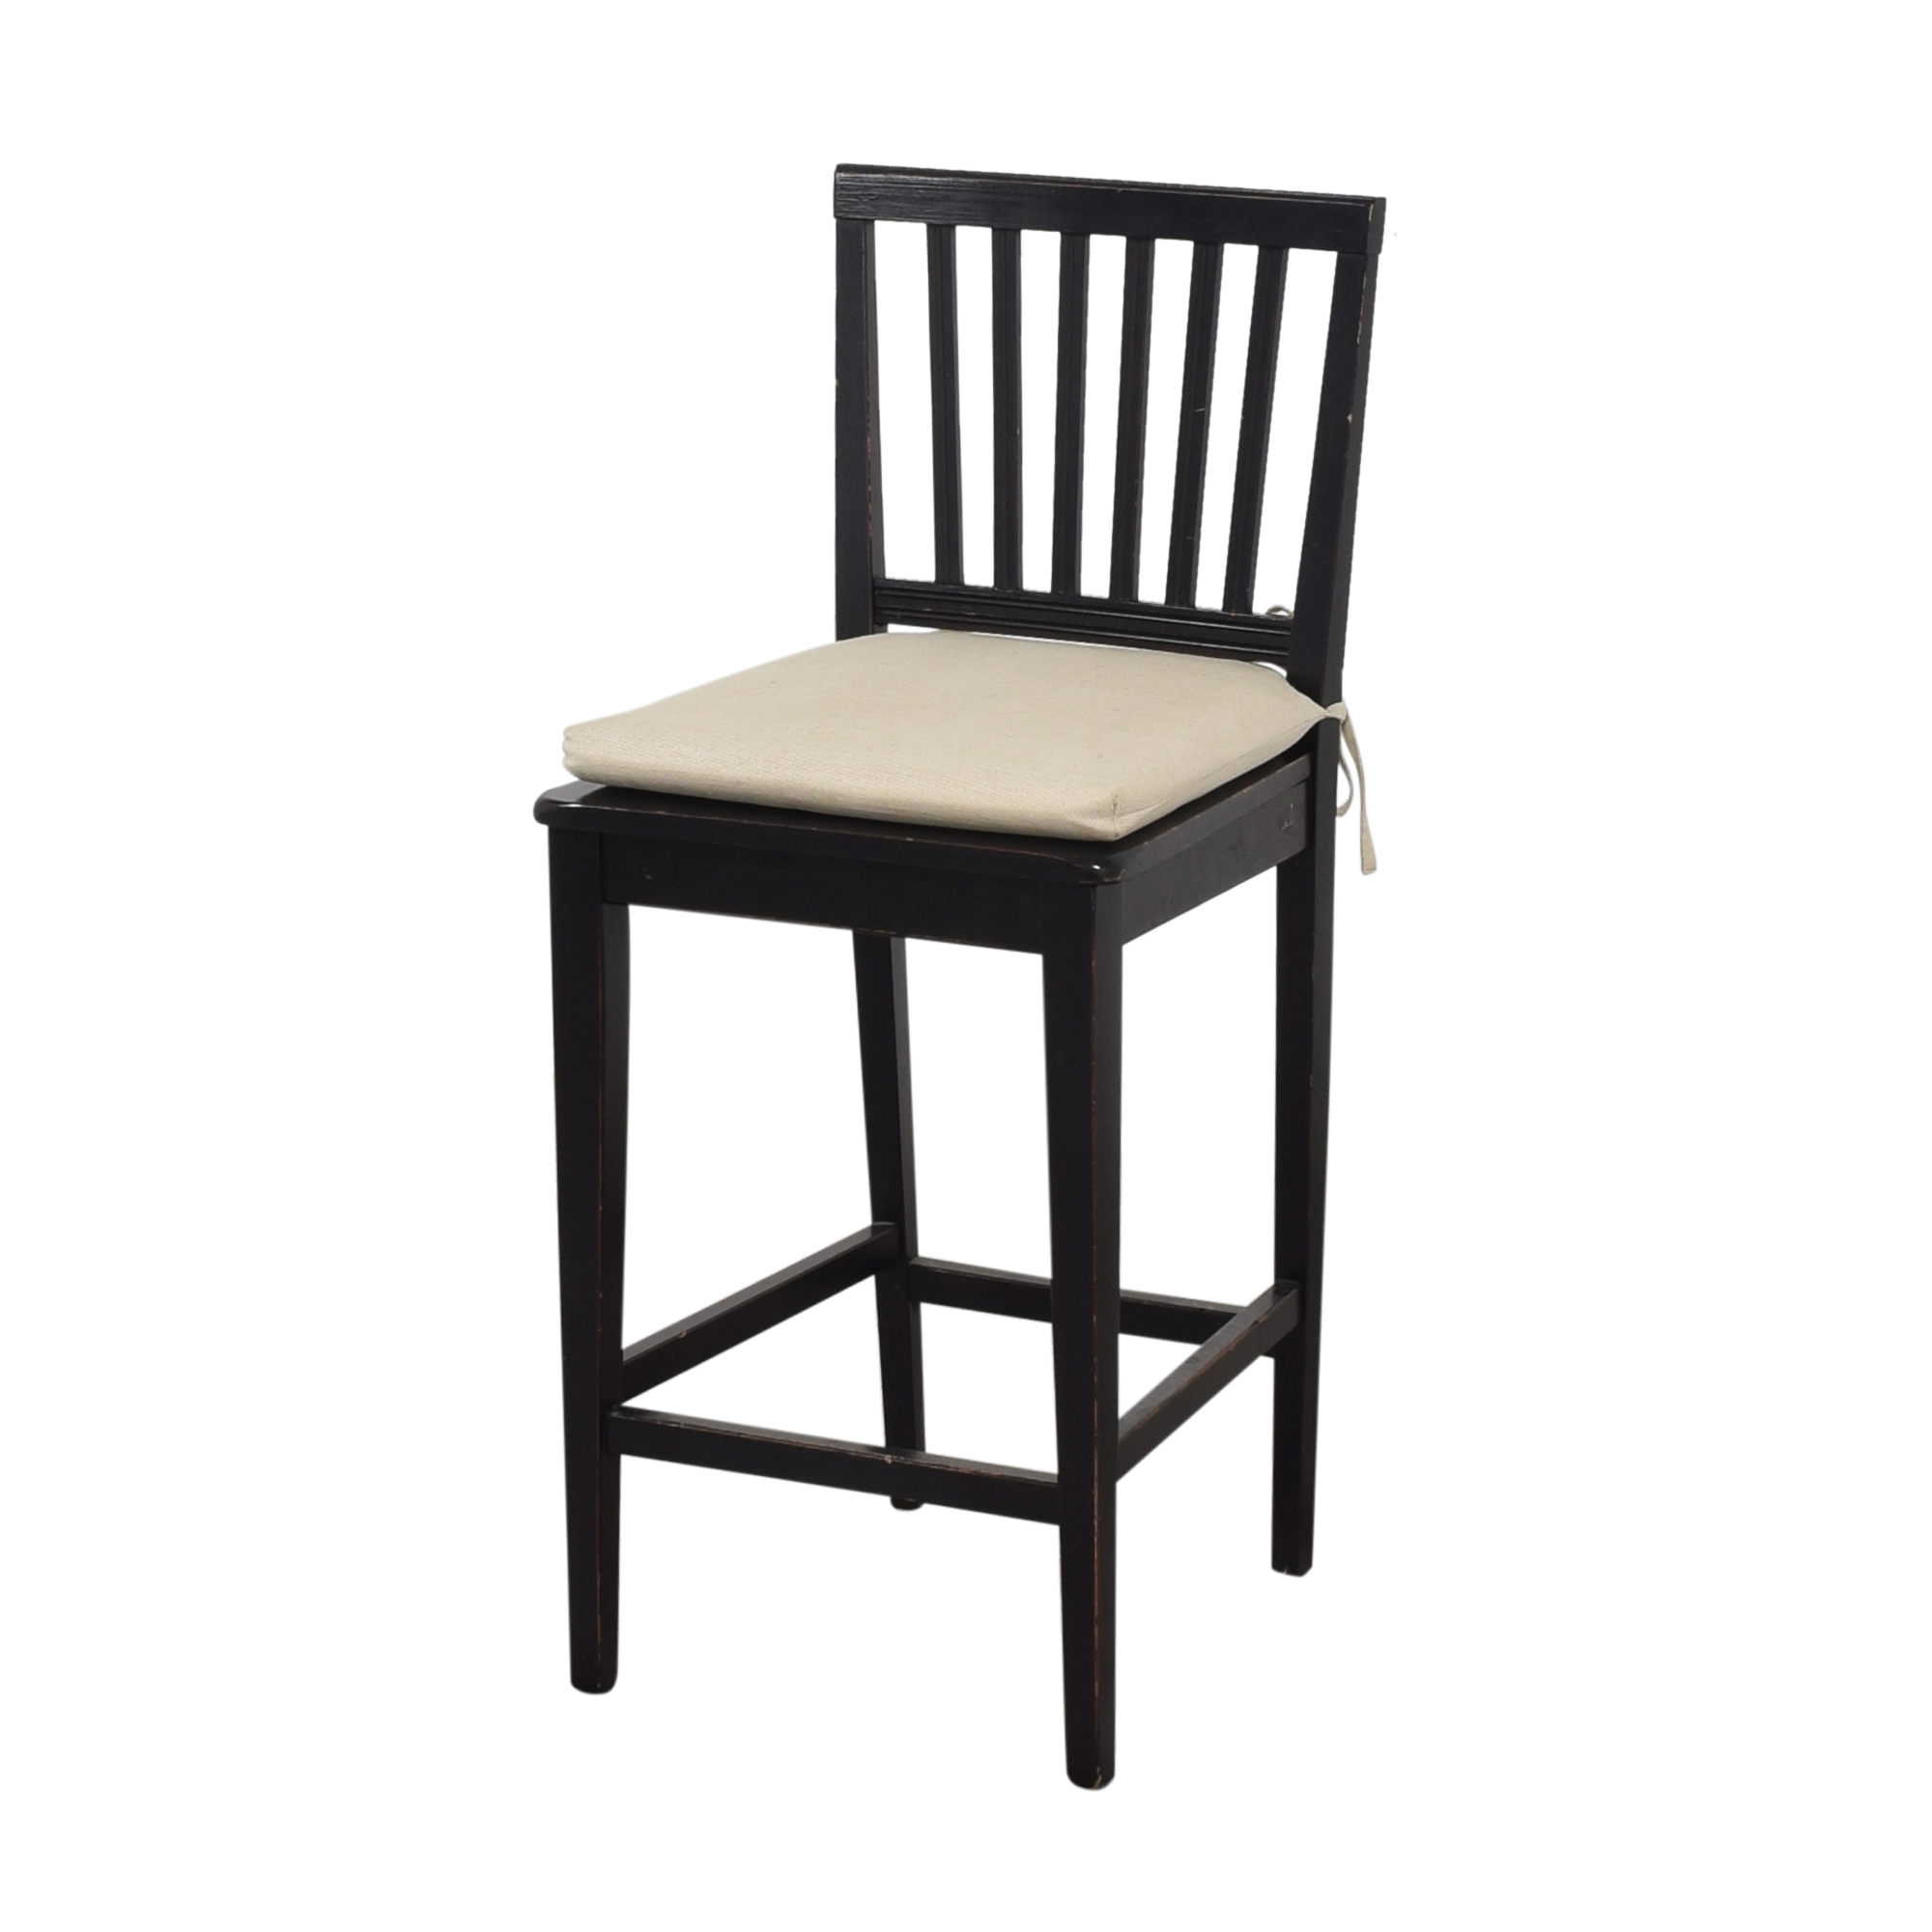 Crate & Barrel Crate & Barrel Buying & Design Counter Height Chairs ma